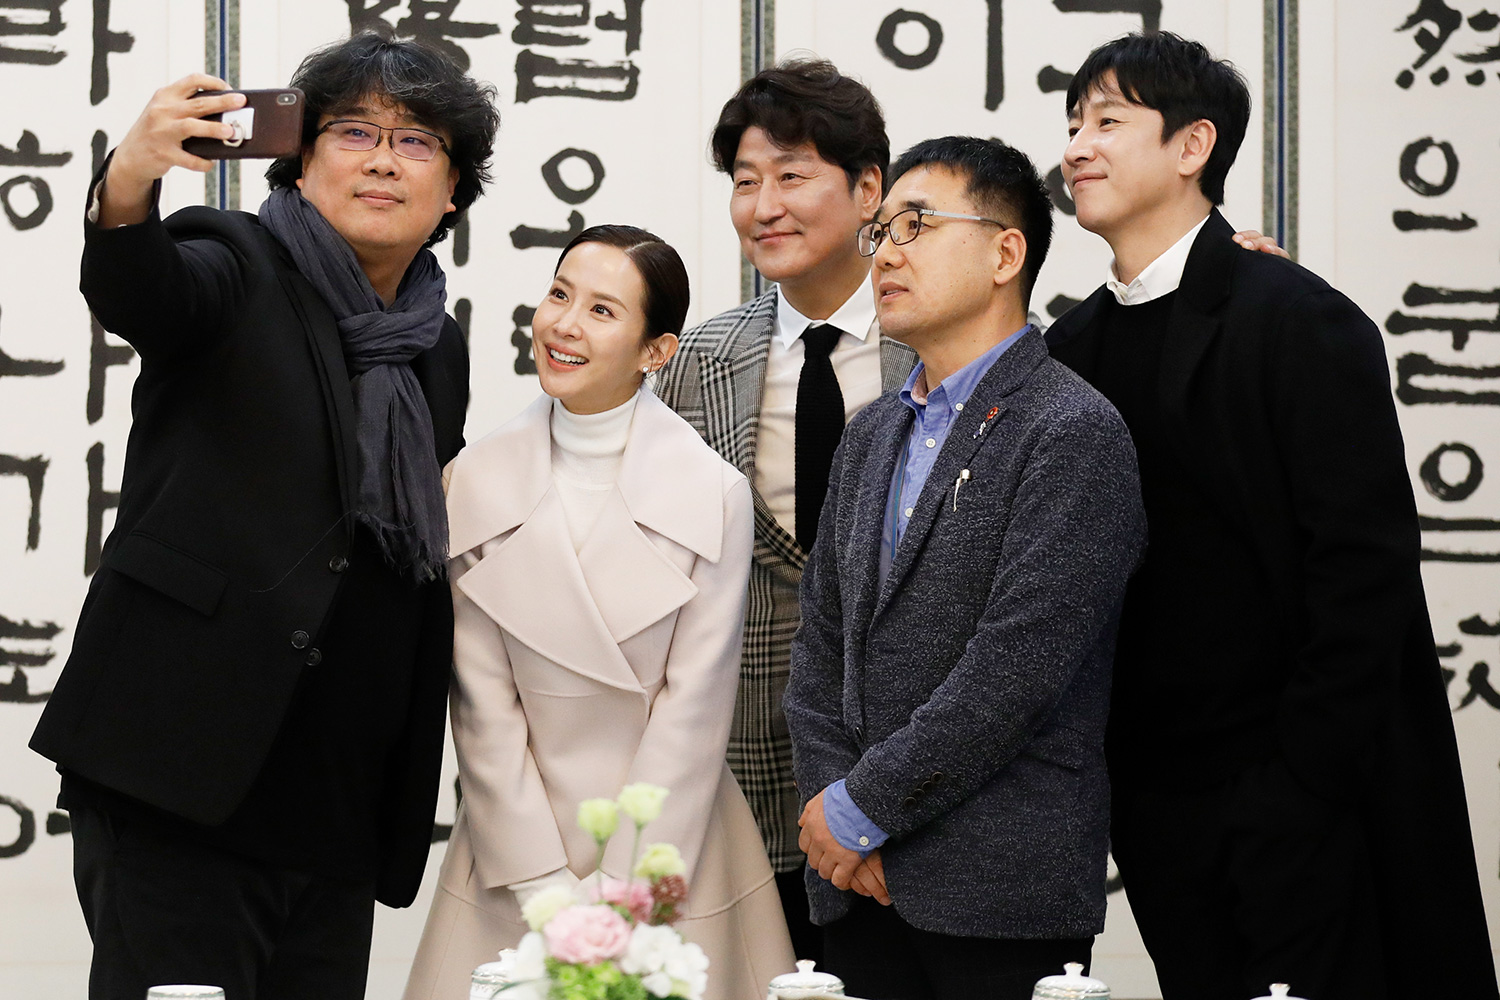 Bong Joon-ho takes a selfie with cast members Song Kang-ho, Cho Yeo-jeong and Lee Sun-kyun at the Presidential Blue House on February 20, 2020 in Seoul, South Korea